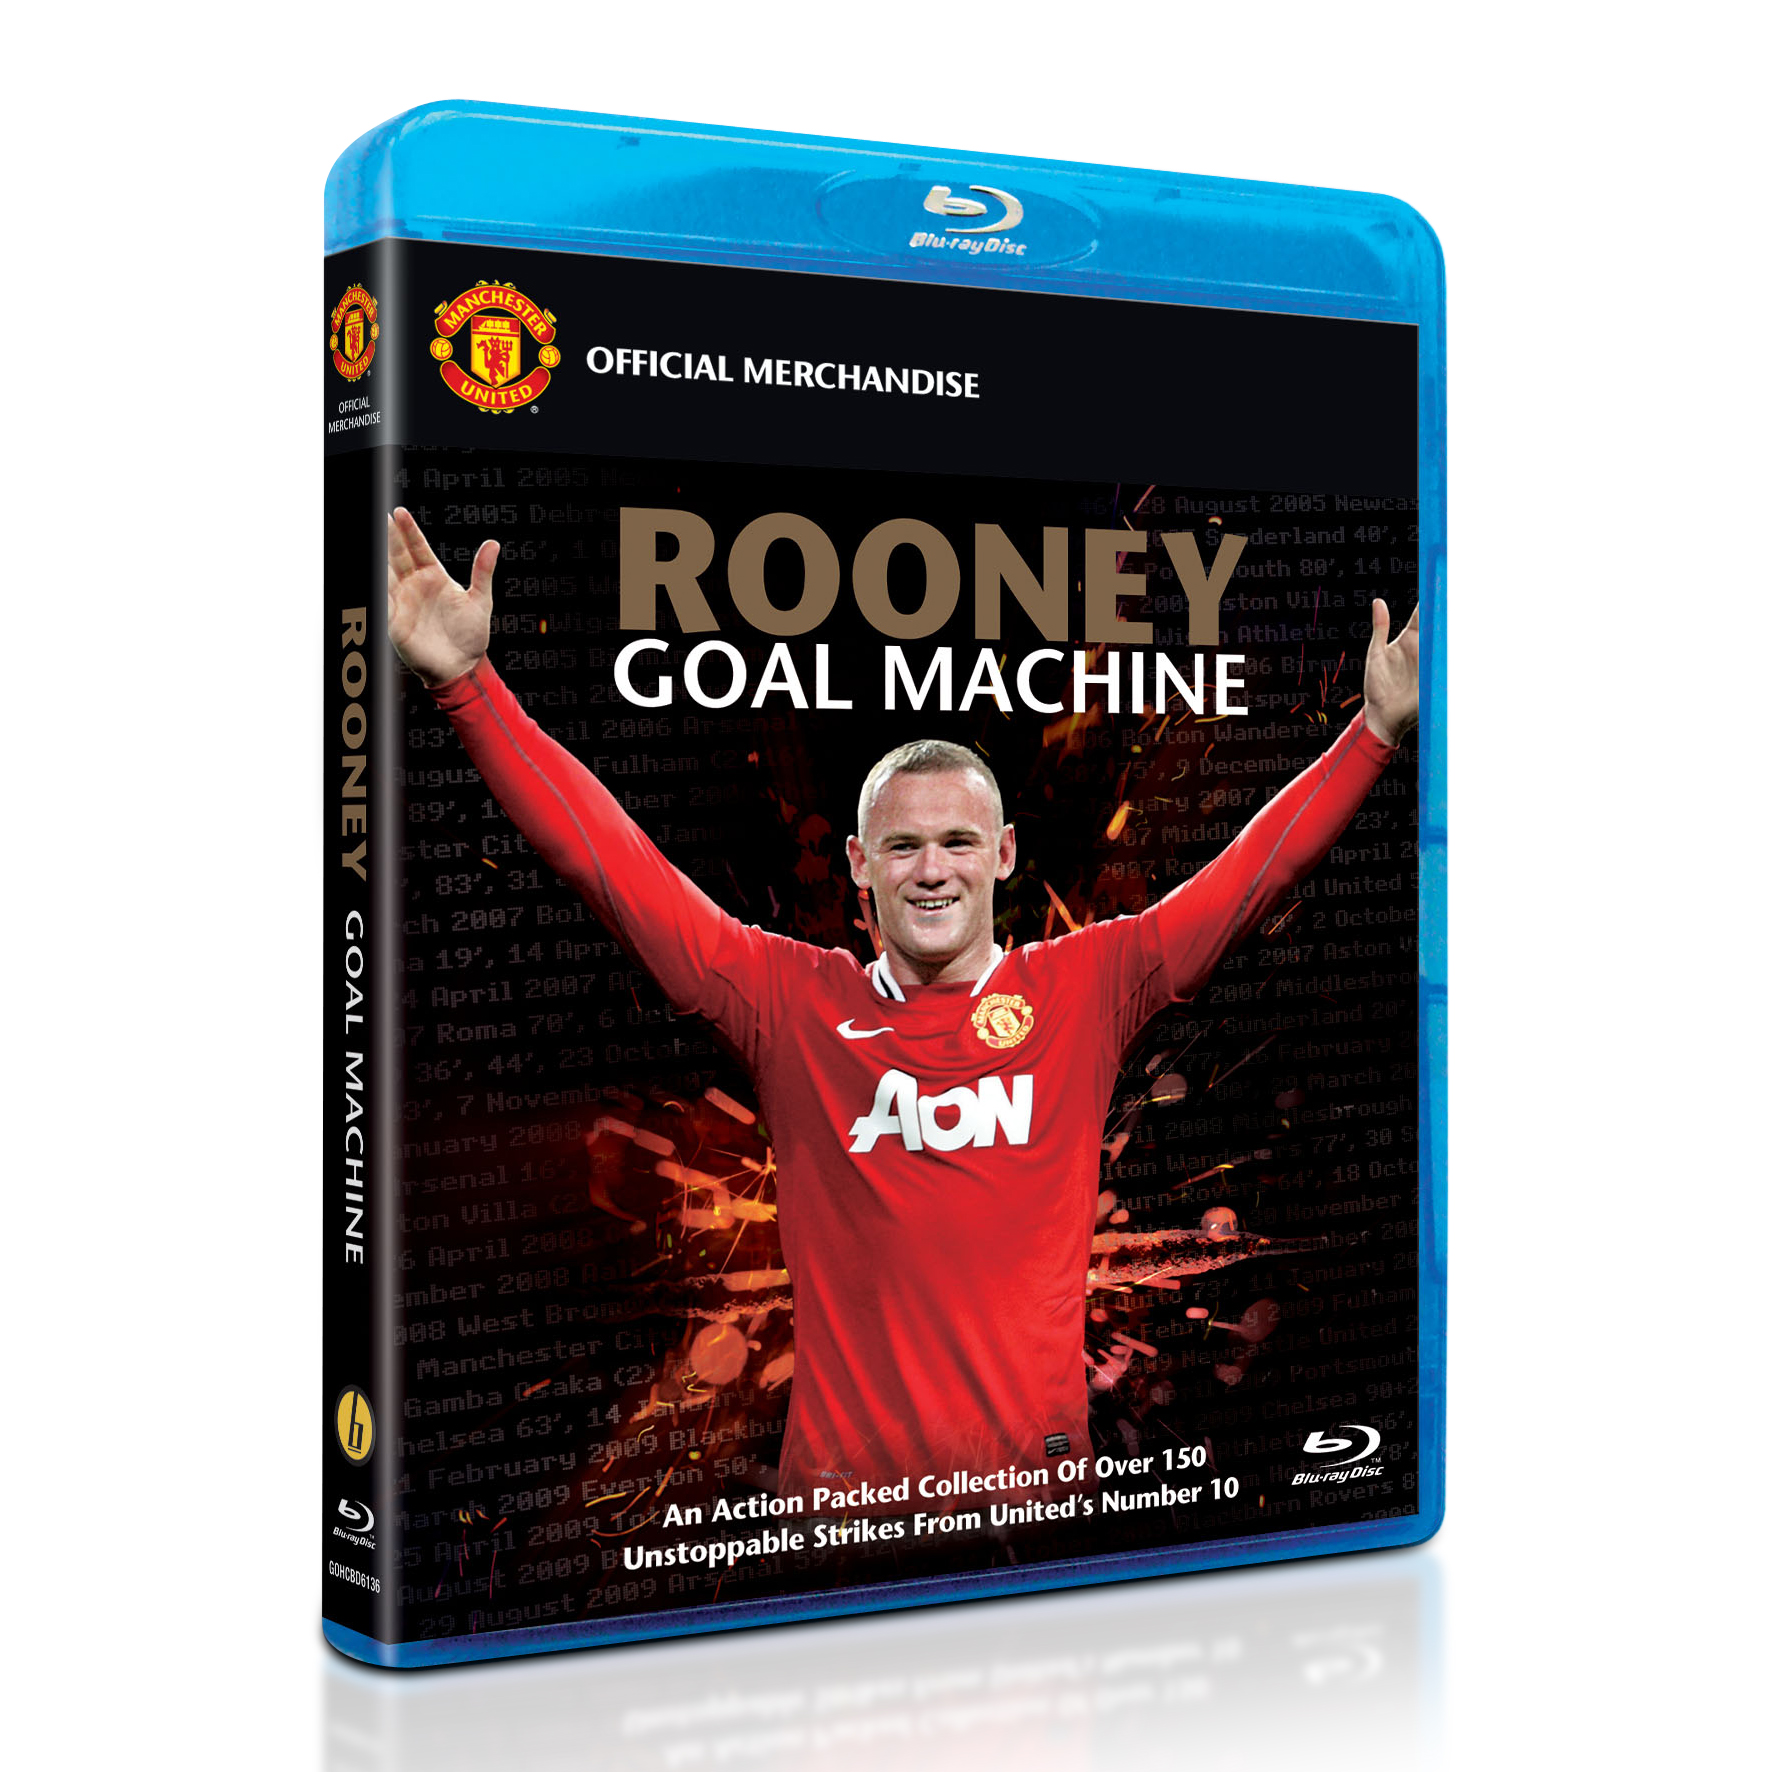 Manchester United Rooney Goal Machine - Blue Ray DVD